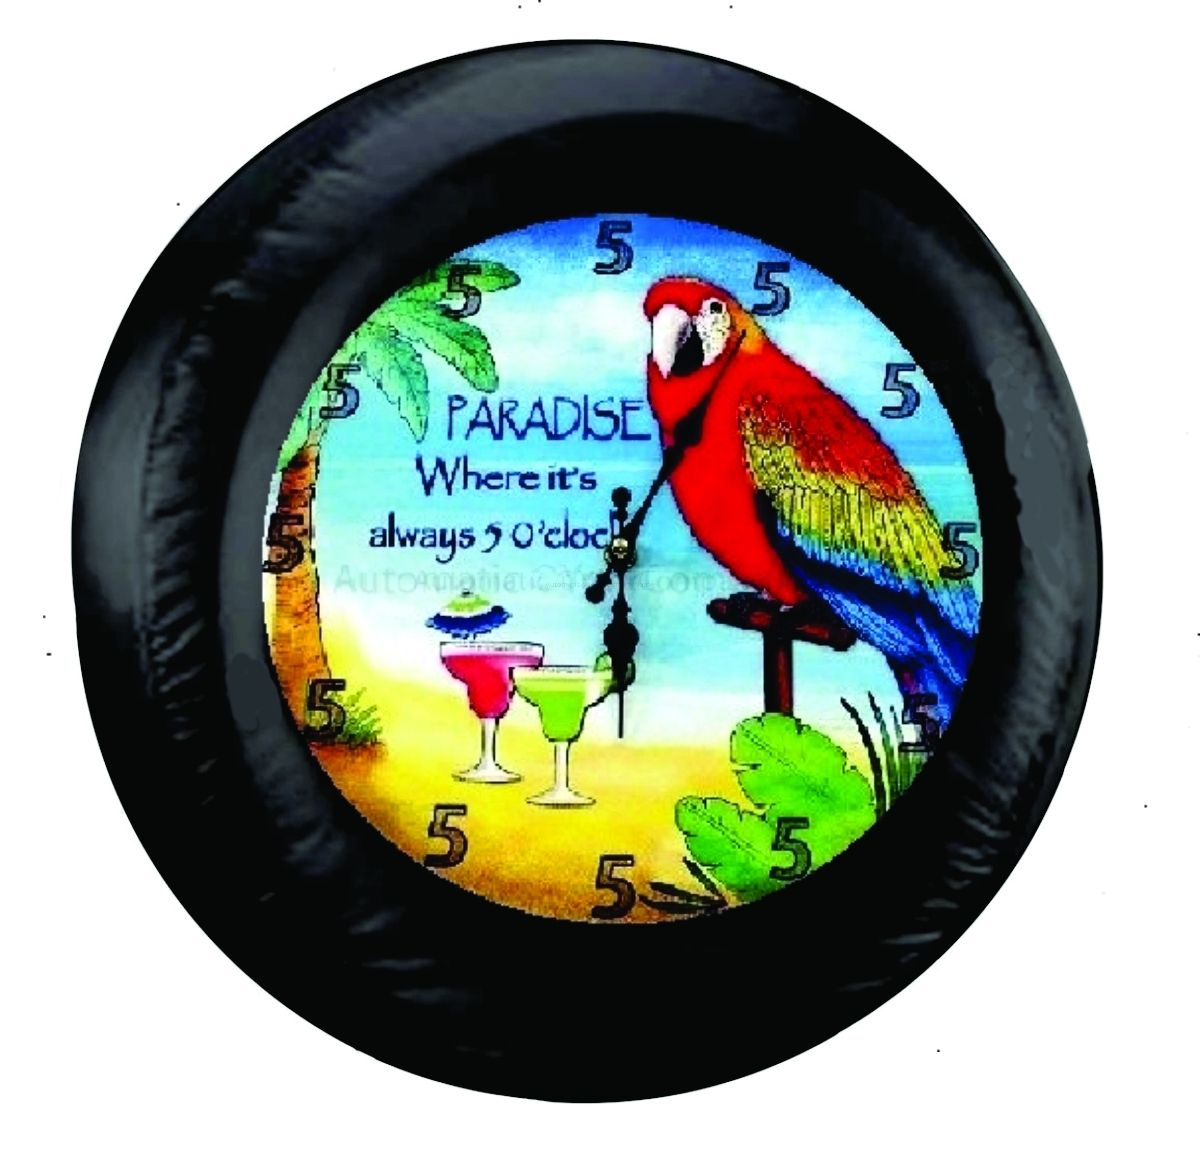 Its 5 o clock somewhere bird in paradise tire cover covers